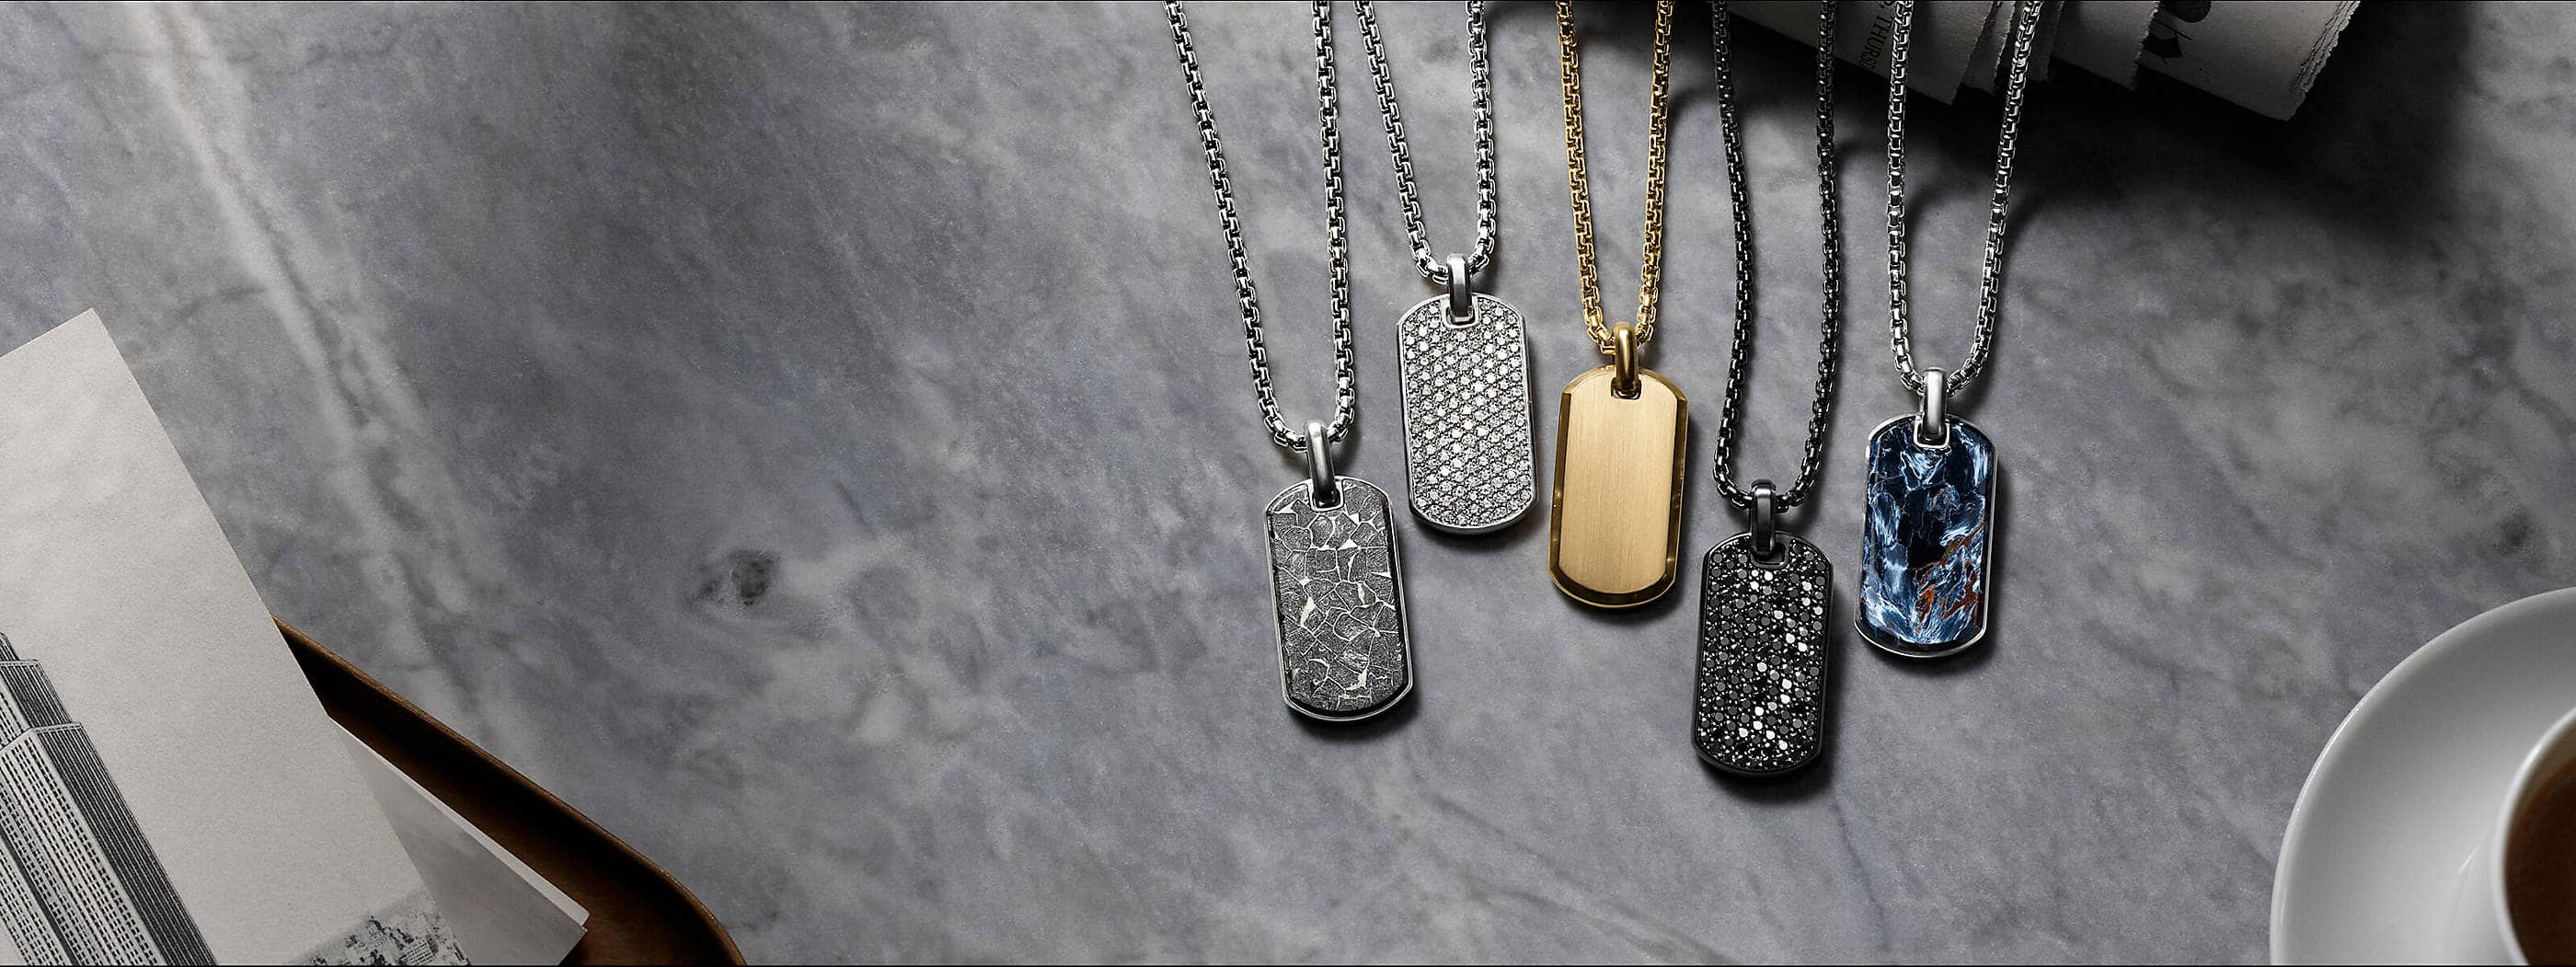 A color photograph shows five David Yurman men's tags strung on sterling silver, 18K yellow gold or black titanium box chains placed in a row on a grey marble surface. Three of the tags are crafted from sterling silver with pietersite, white diamonds or meteorite. One tag is crafted from 18K yellow gold. The final tag is crafted from black titanium with black diamonds. To the right of the jewelry is a white cup and saucer; to the left is a black-and-white photo of a skyscraper on a metal tray.